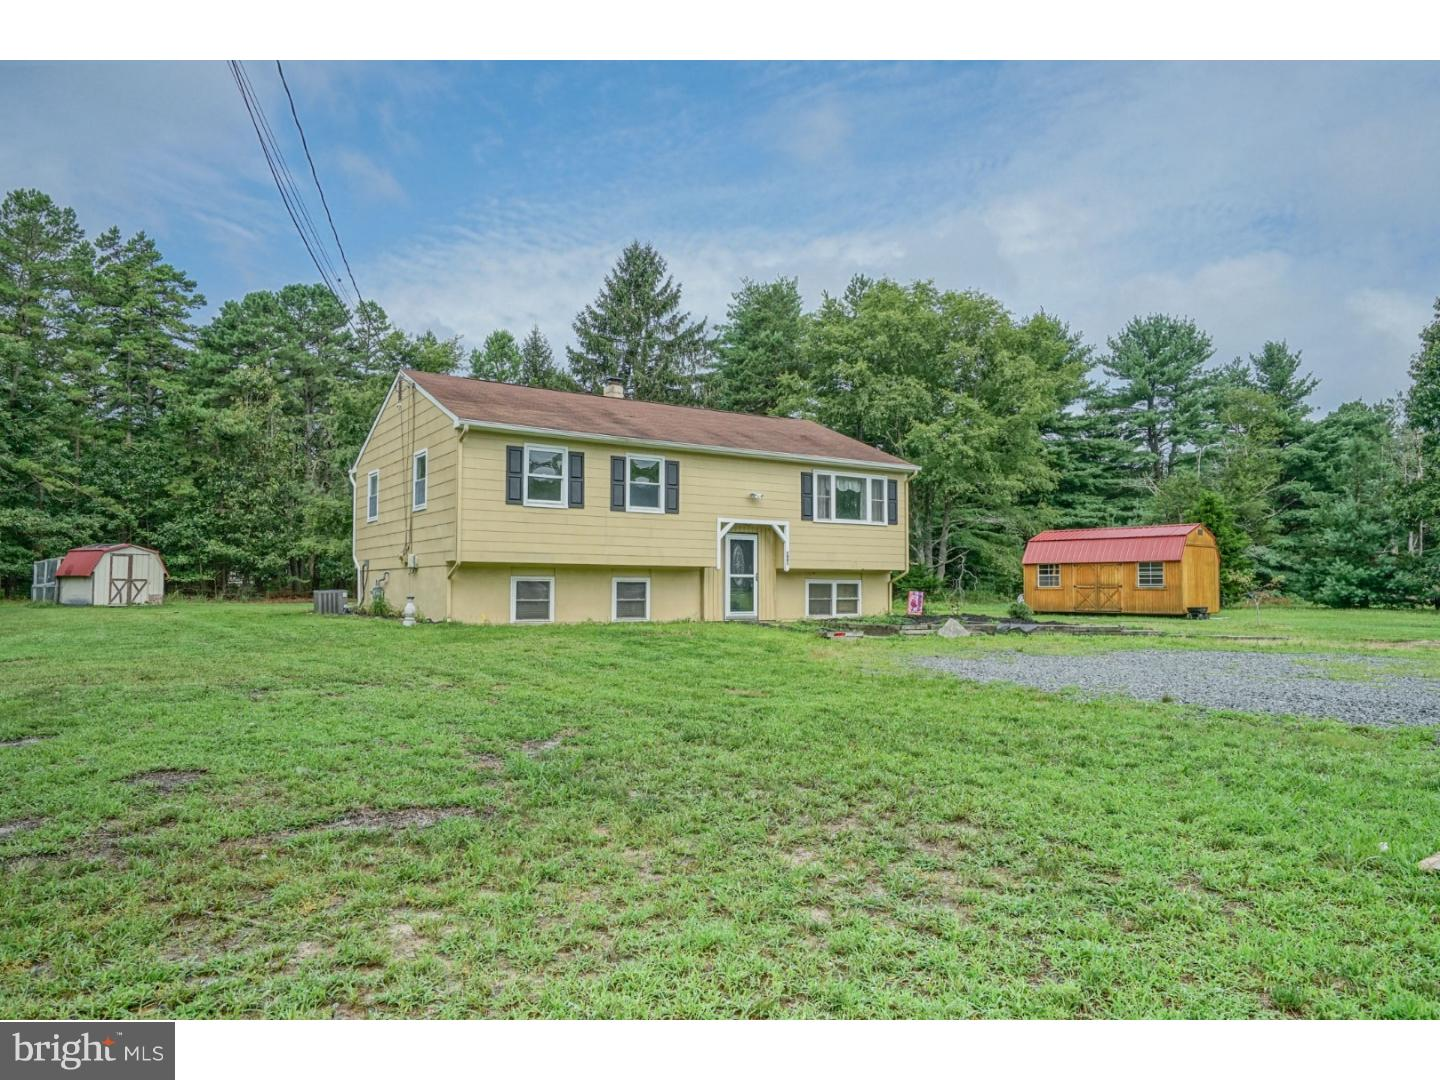 Single Family Home for Sale at 318 ATSION Road Shamong Township, New Jersey 08088 United States